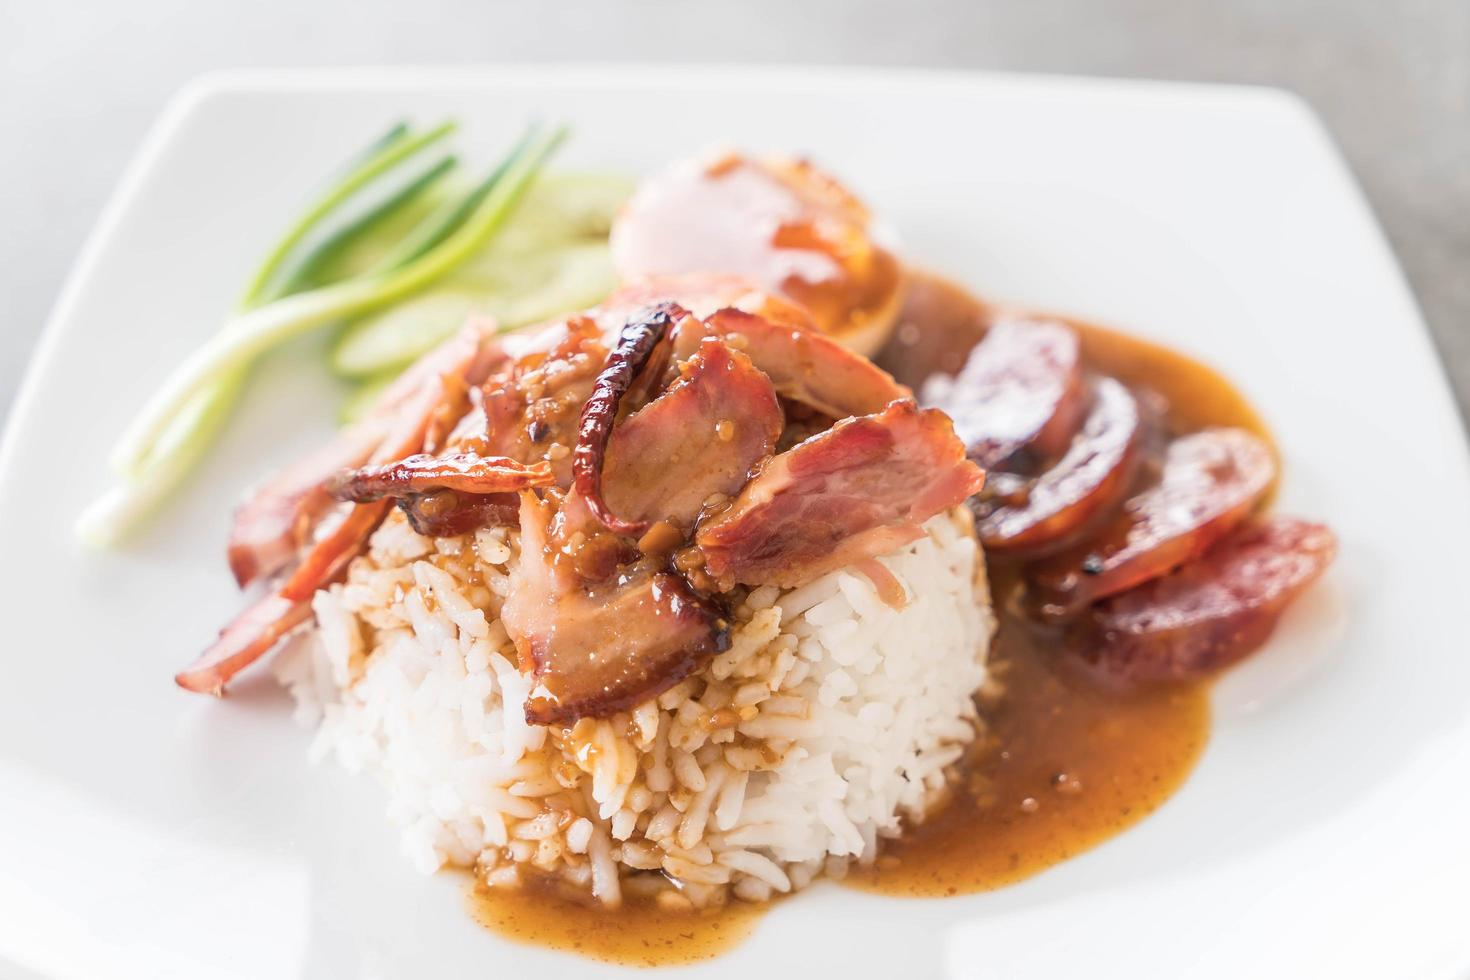 Barbecued red pork with rice photo